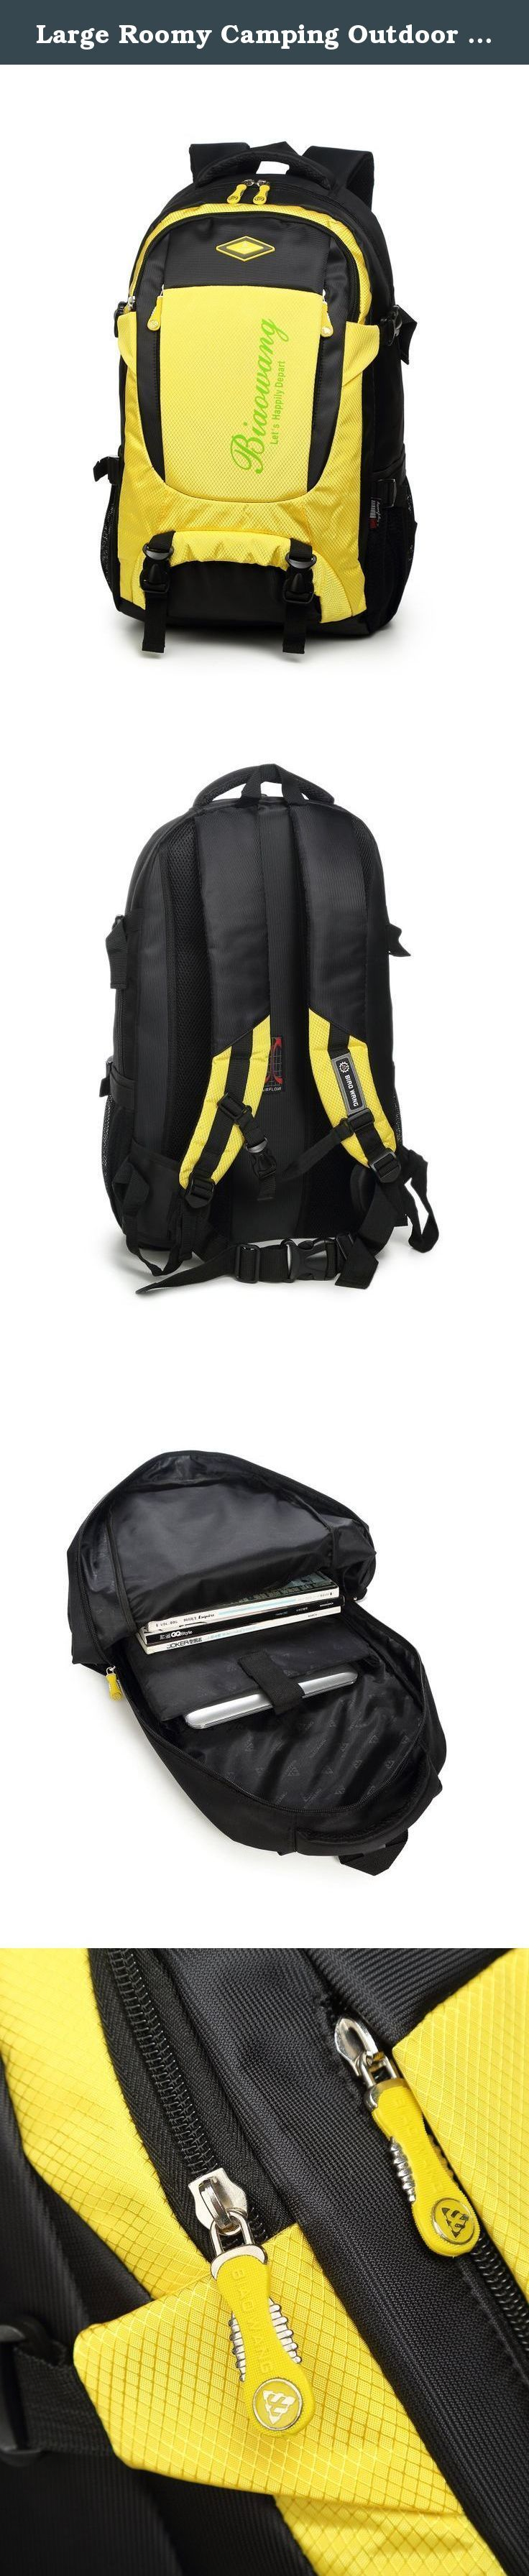 Large Roomy Camping Outdoor Sport Travel Backpack Bag Trekking Rucksacks for Father's Day. Well designed and made, lightweight and durable, Polyester back pad, more comfortable. Size: 13'' x 10'' x 22'' Dual mesh Pocketes at each side for water bottle, etc. With high density mesh back pad on shoulder strap and waist strap, more breathable and comfortable. Adjustable shoulder strap and waist strap to fit your comfortable.